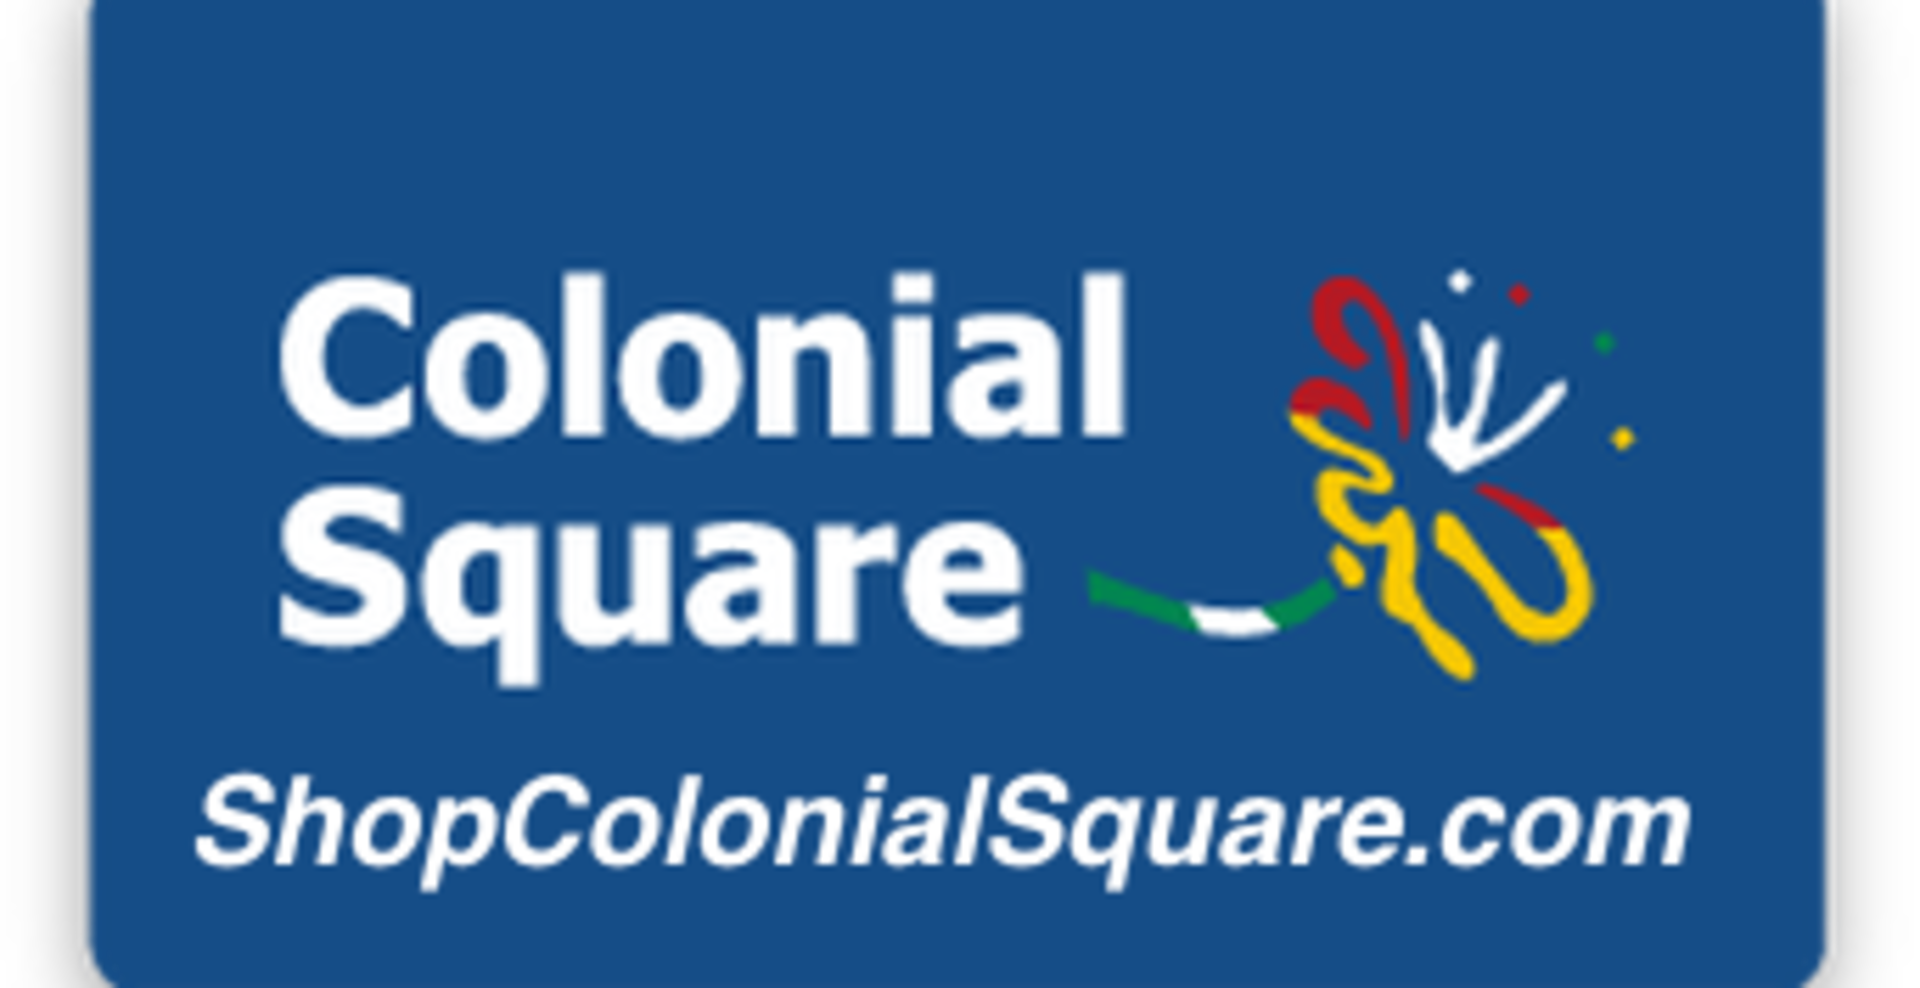 Colonial-Square